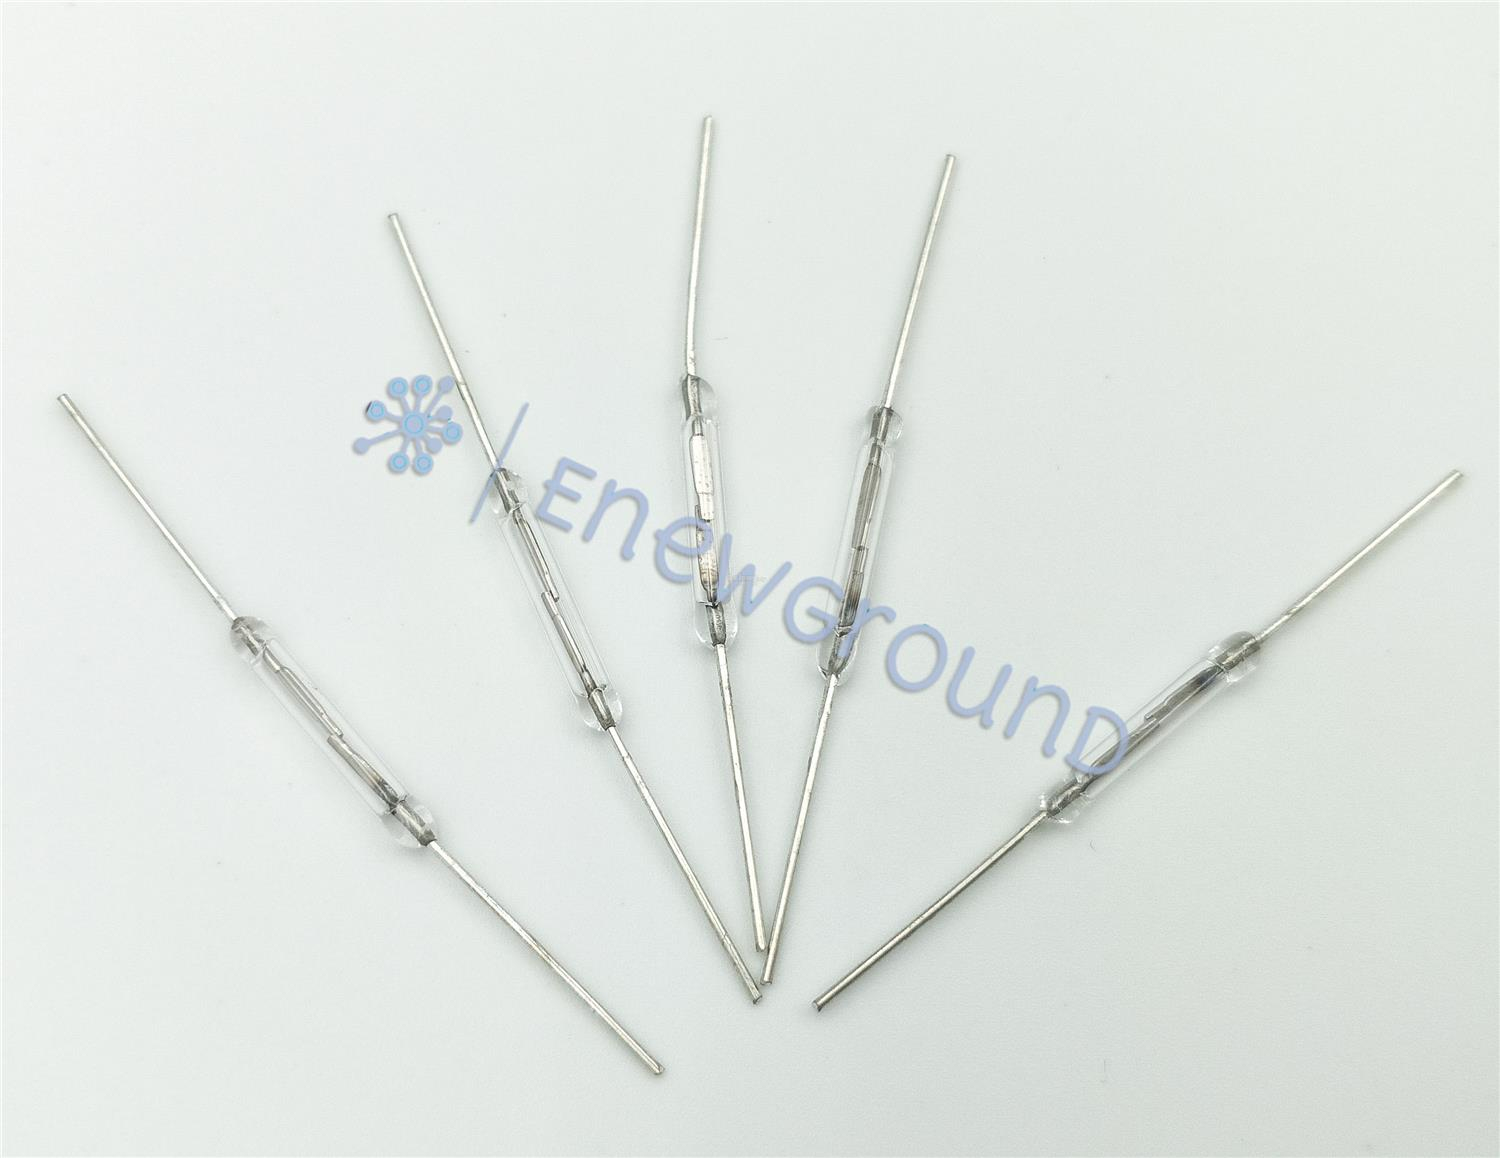 Reed switch (2*14 mm, normal open)